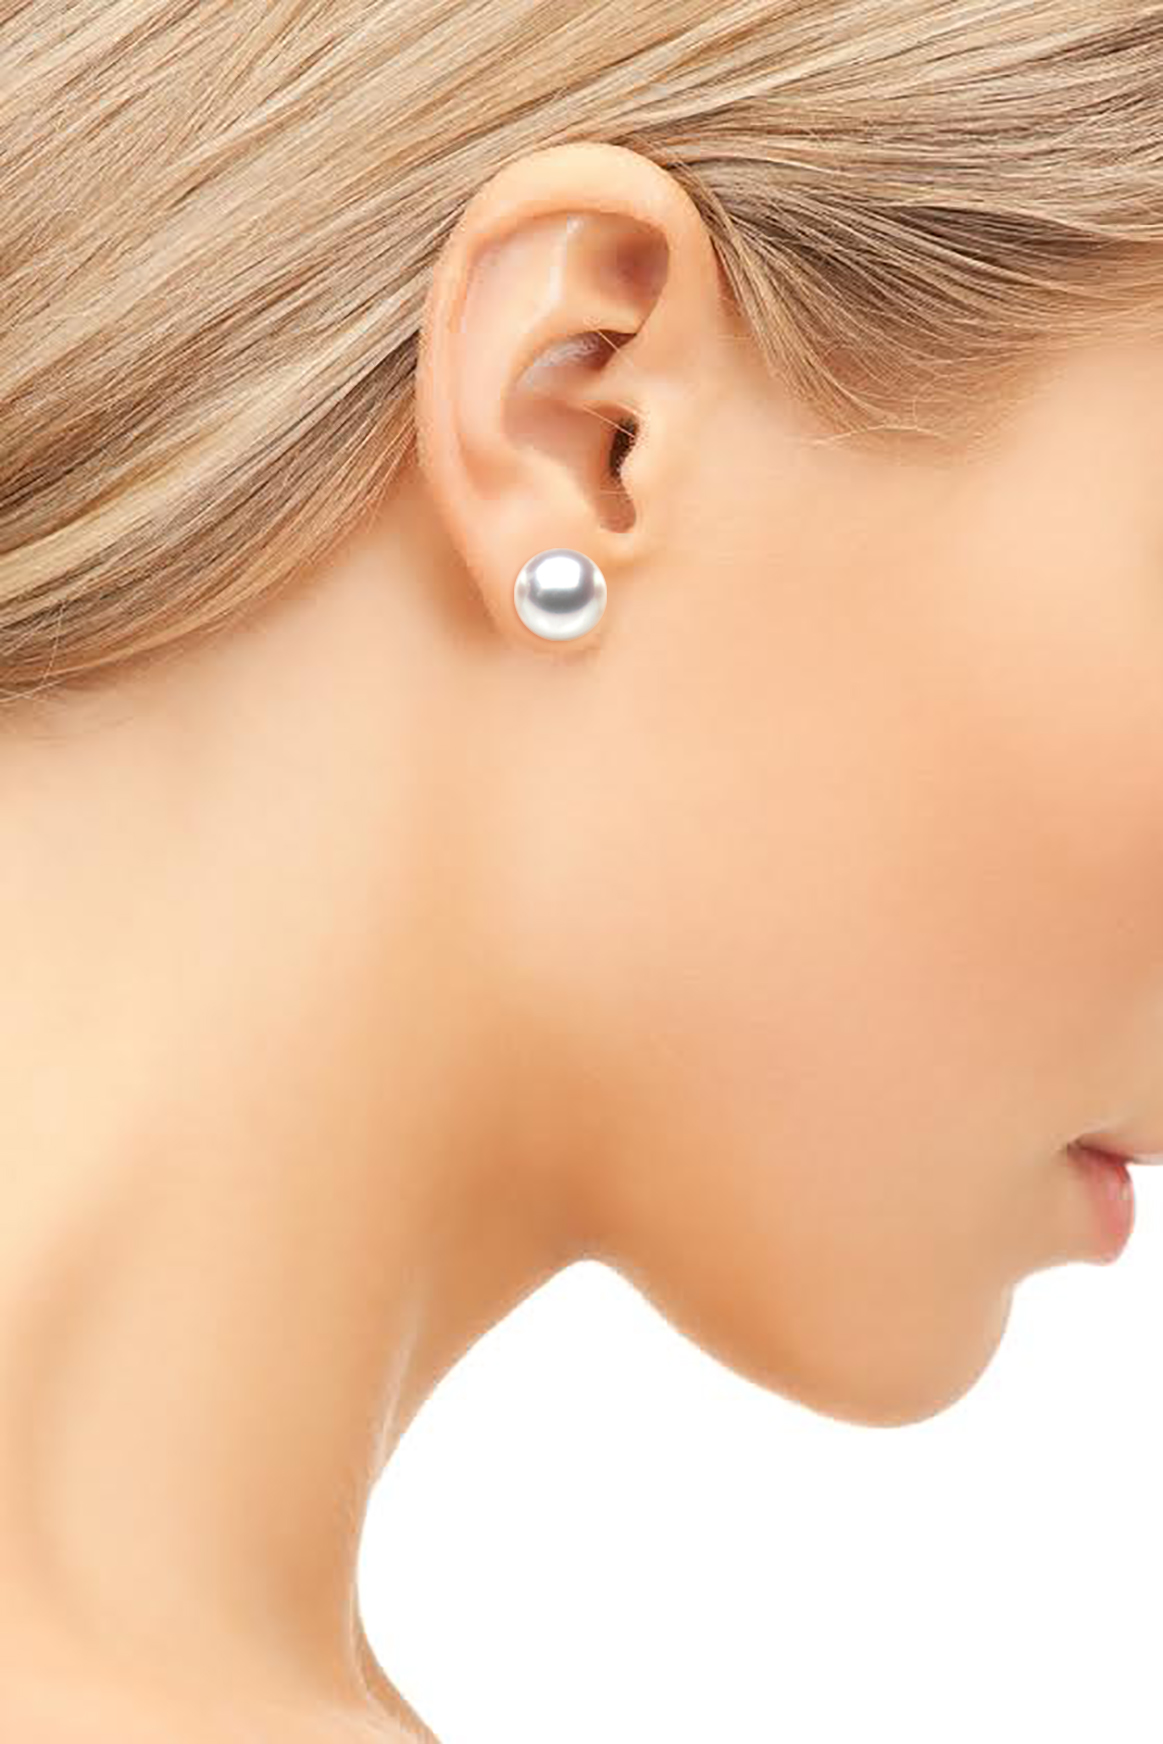 HS Japanese Akoya Cultured Pearl 8mm Stud Earrings 14ct White Gold Top Grading